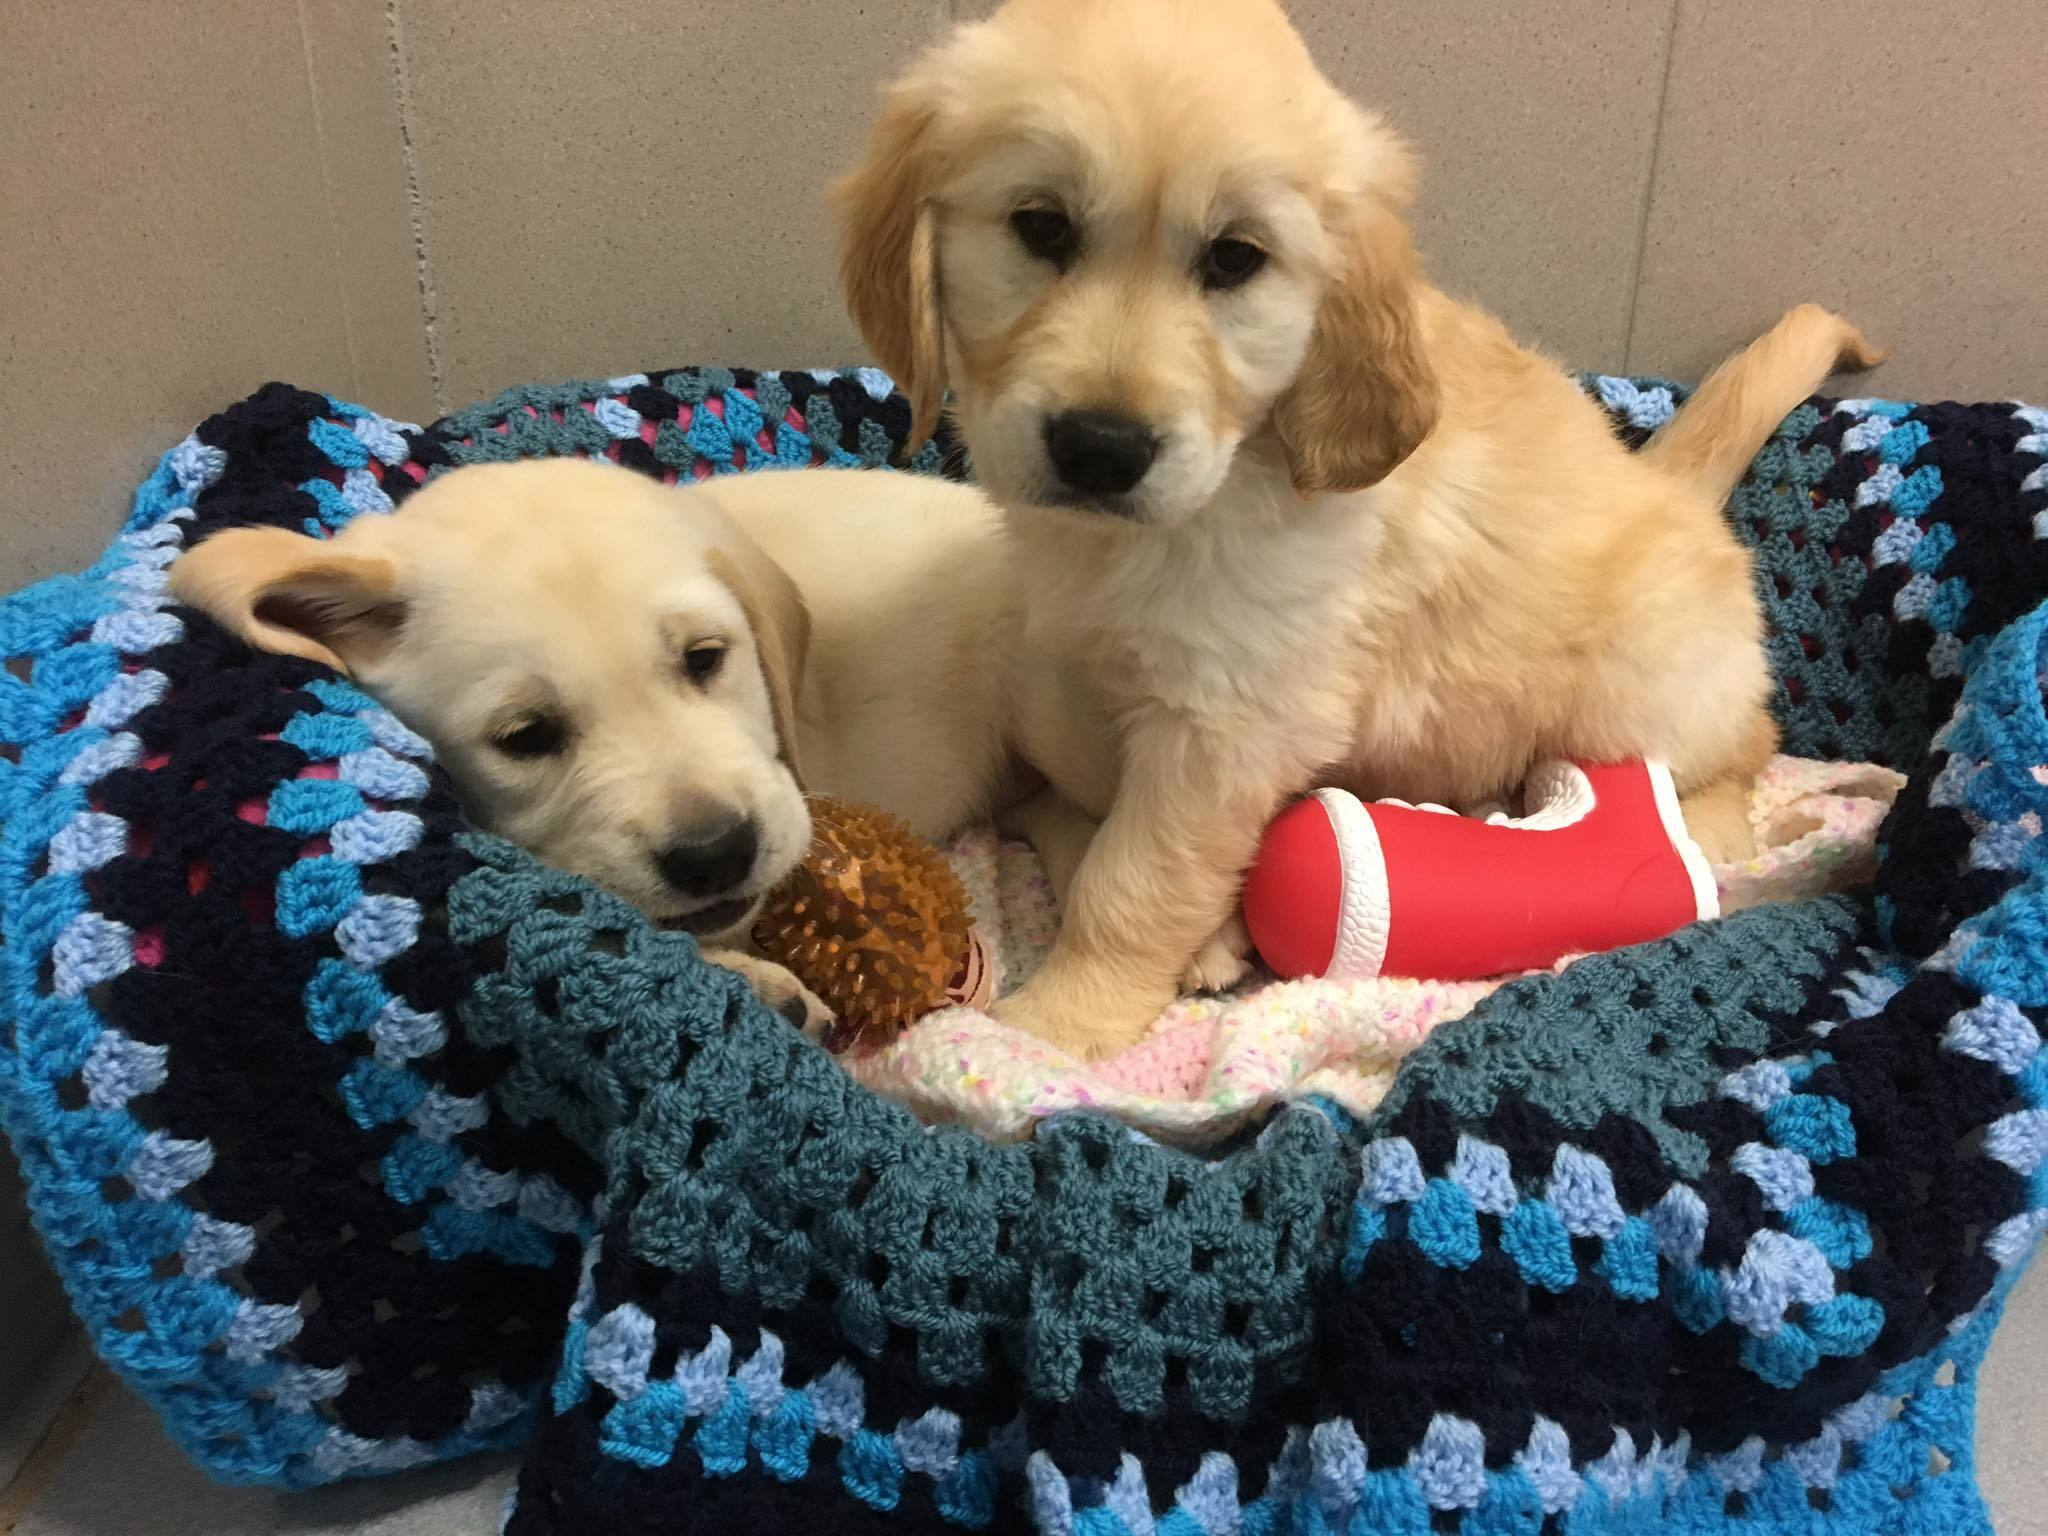 Volunteers are being sought to offer a temporary home to guide dog puppies.